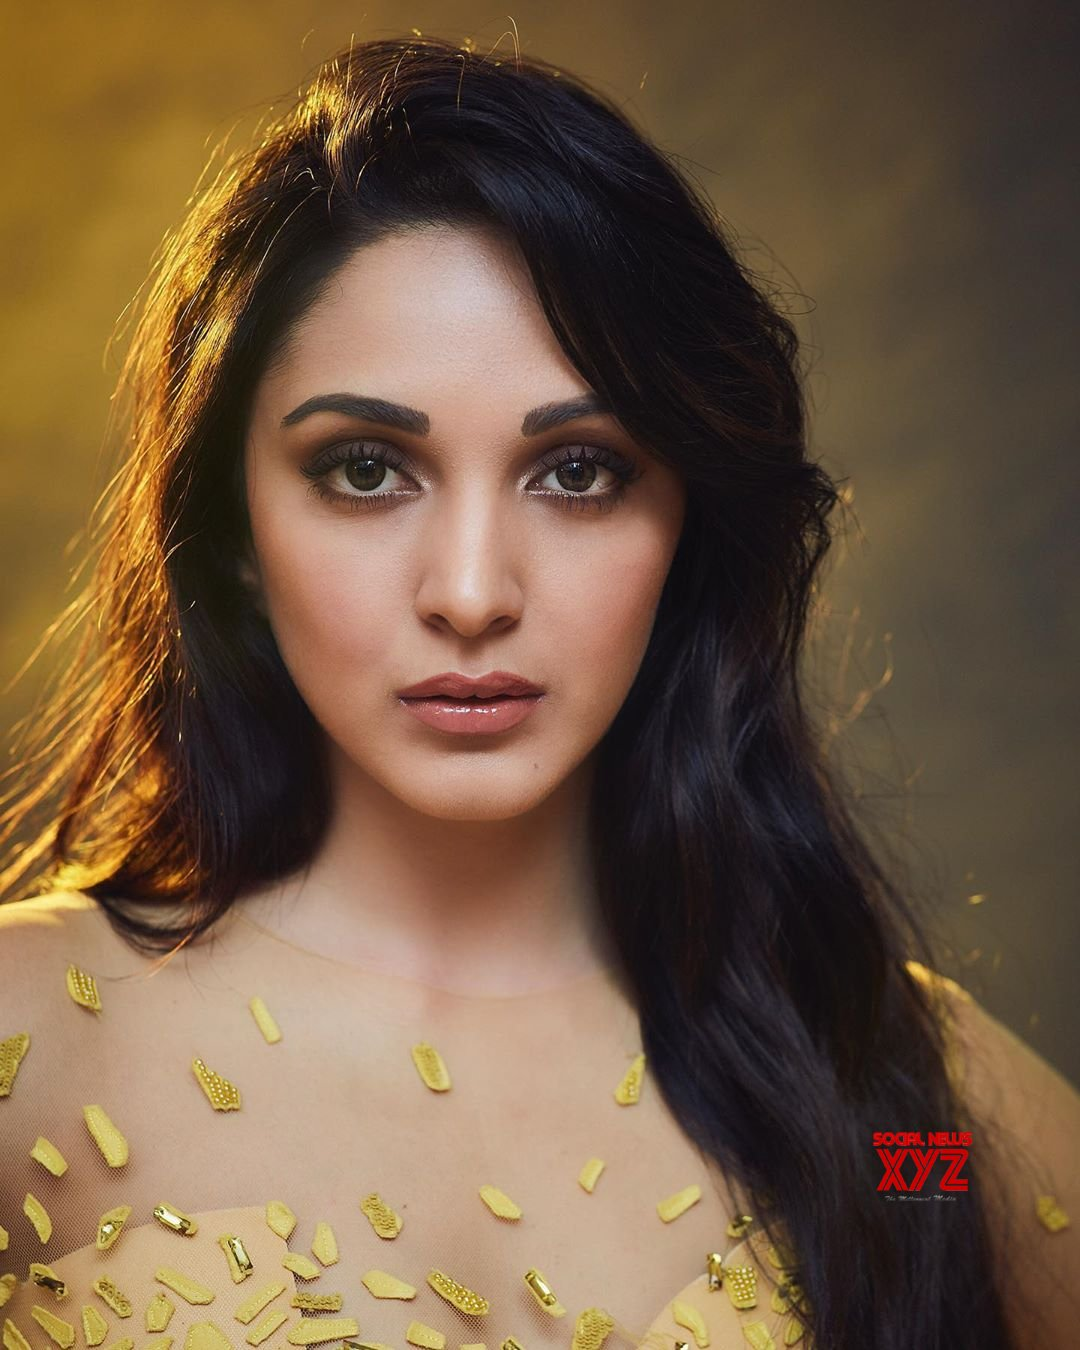 Actress Kiara Advani Hot And Sexy Stills From Filmfare Style And Glamour Awards 2019